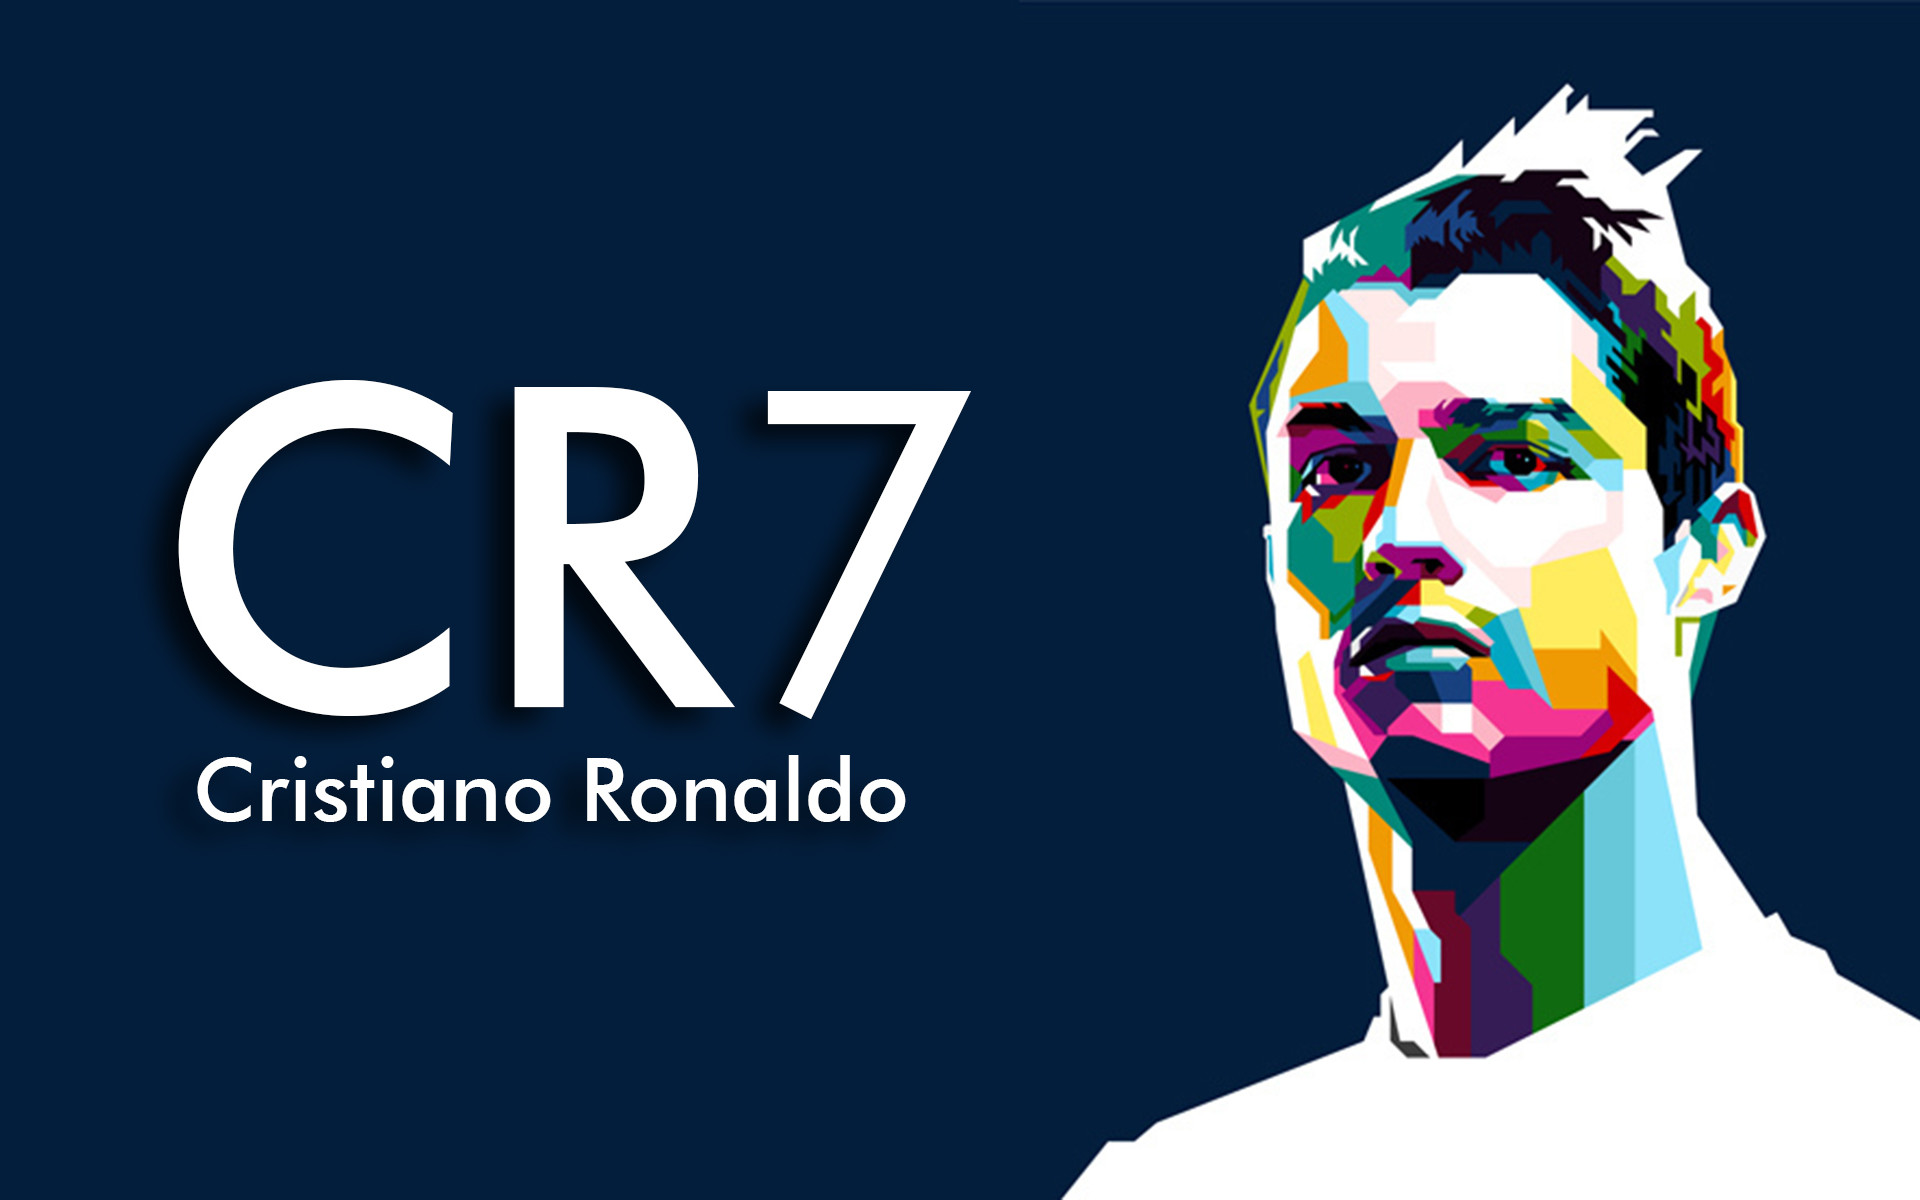 3d Animated Wallpapers For Windows 7 Cr7 Cristiano Ronaldo Wallpaper Hd